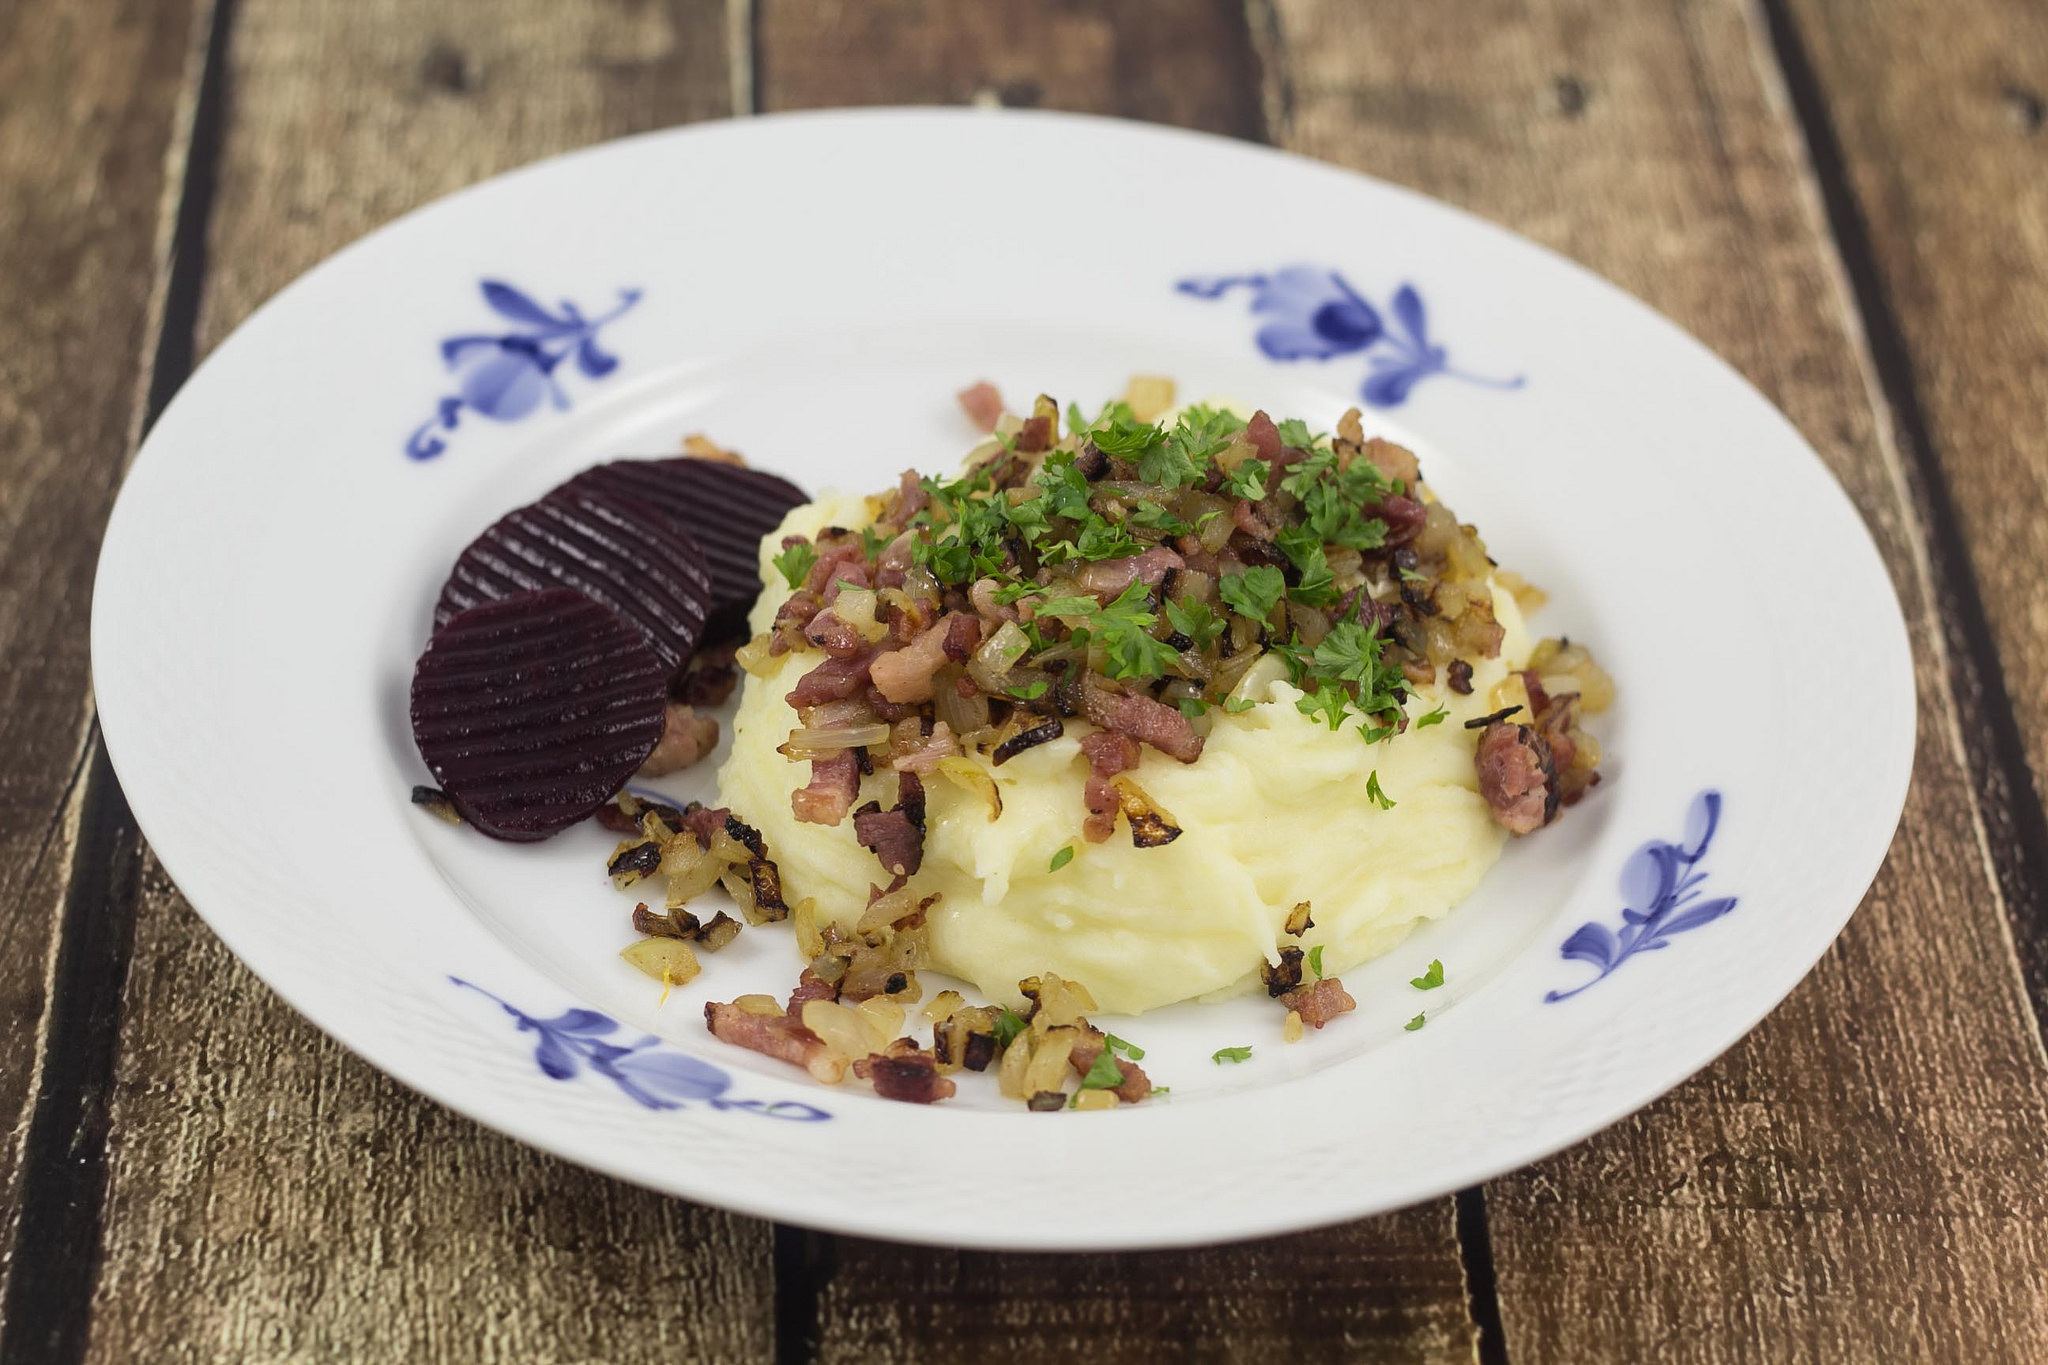 Danish mashed potatoes with bacon and beets.